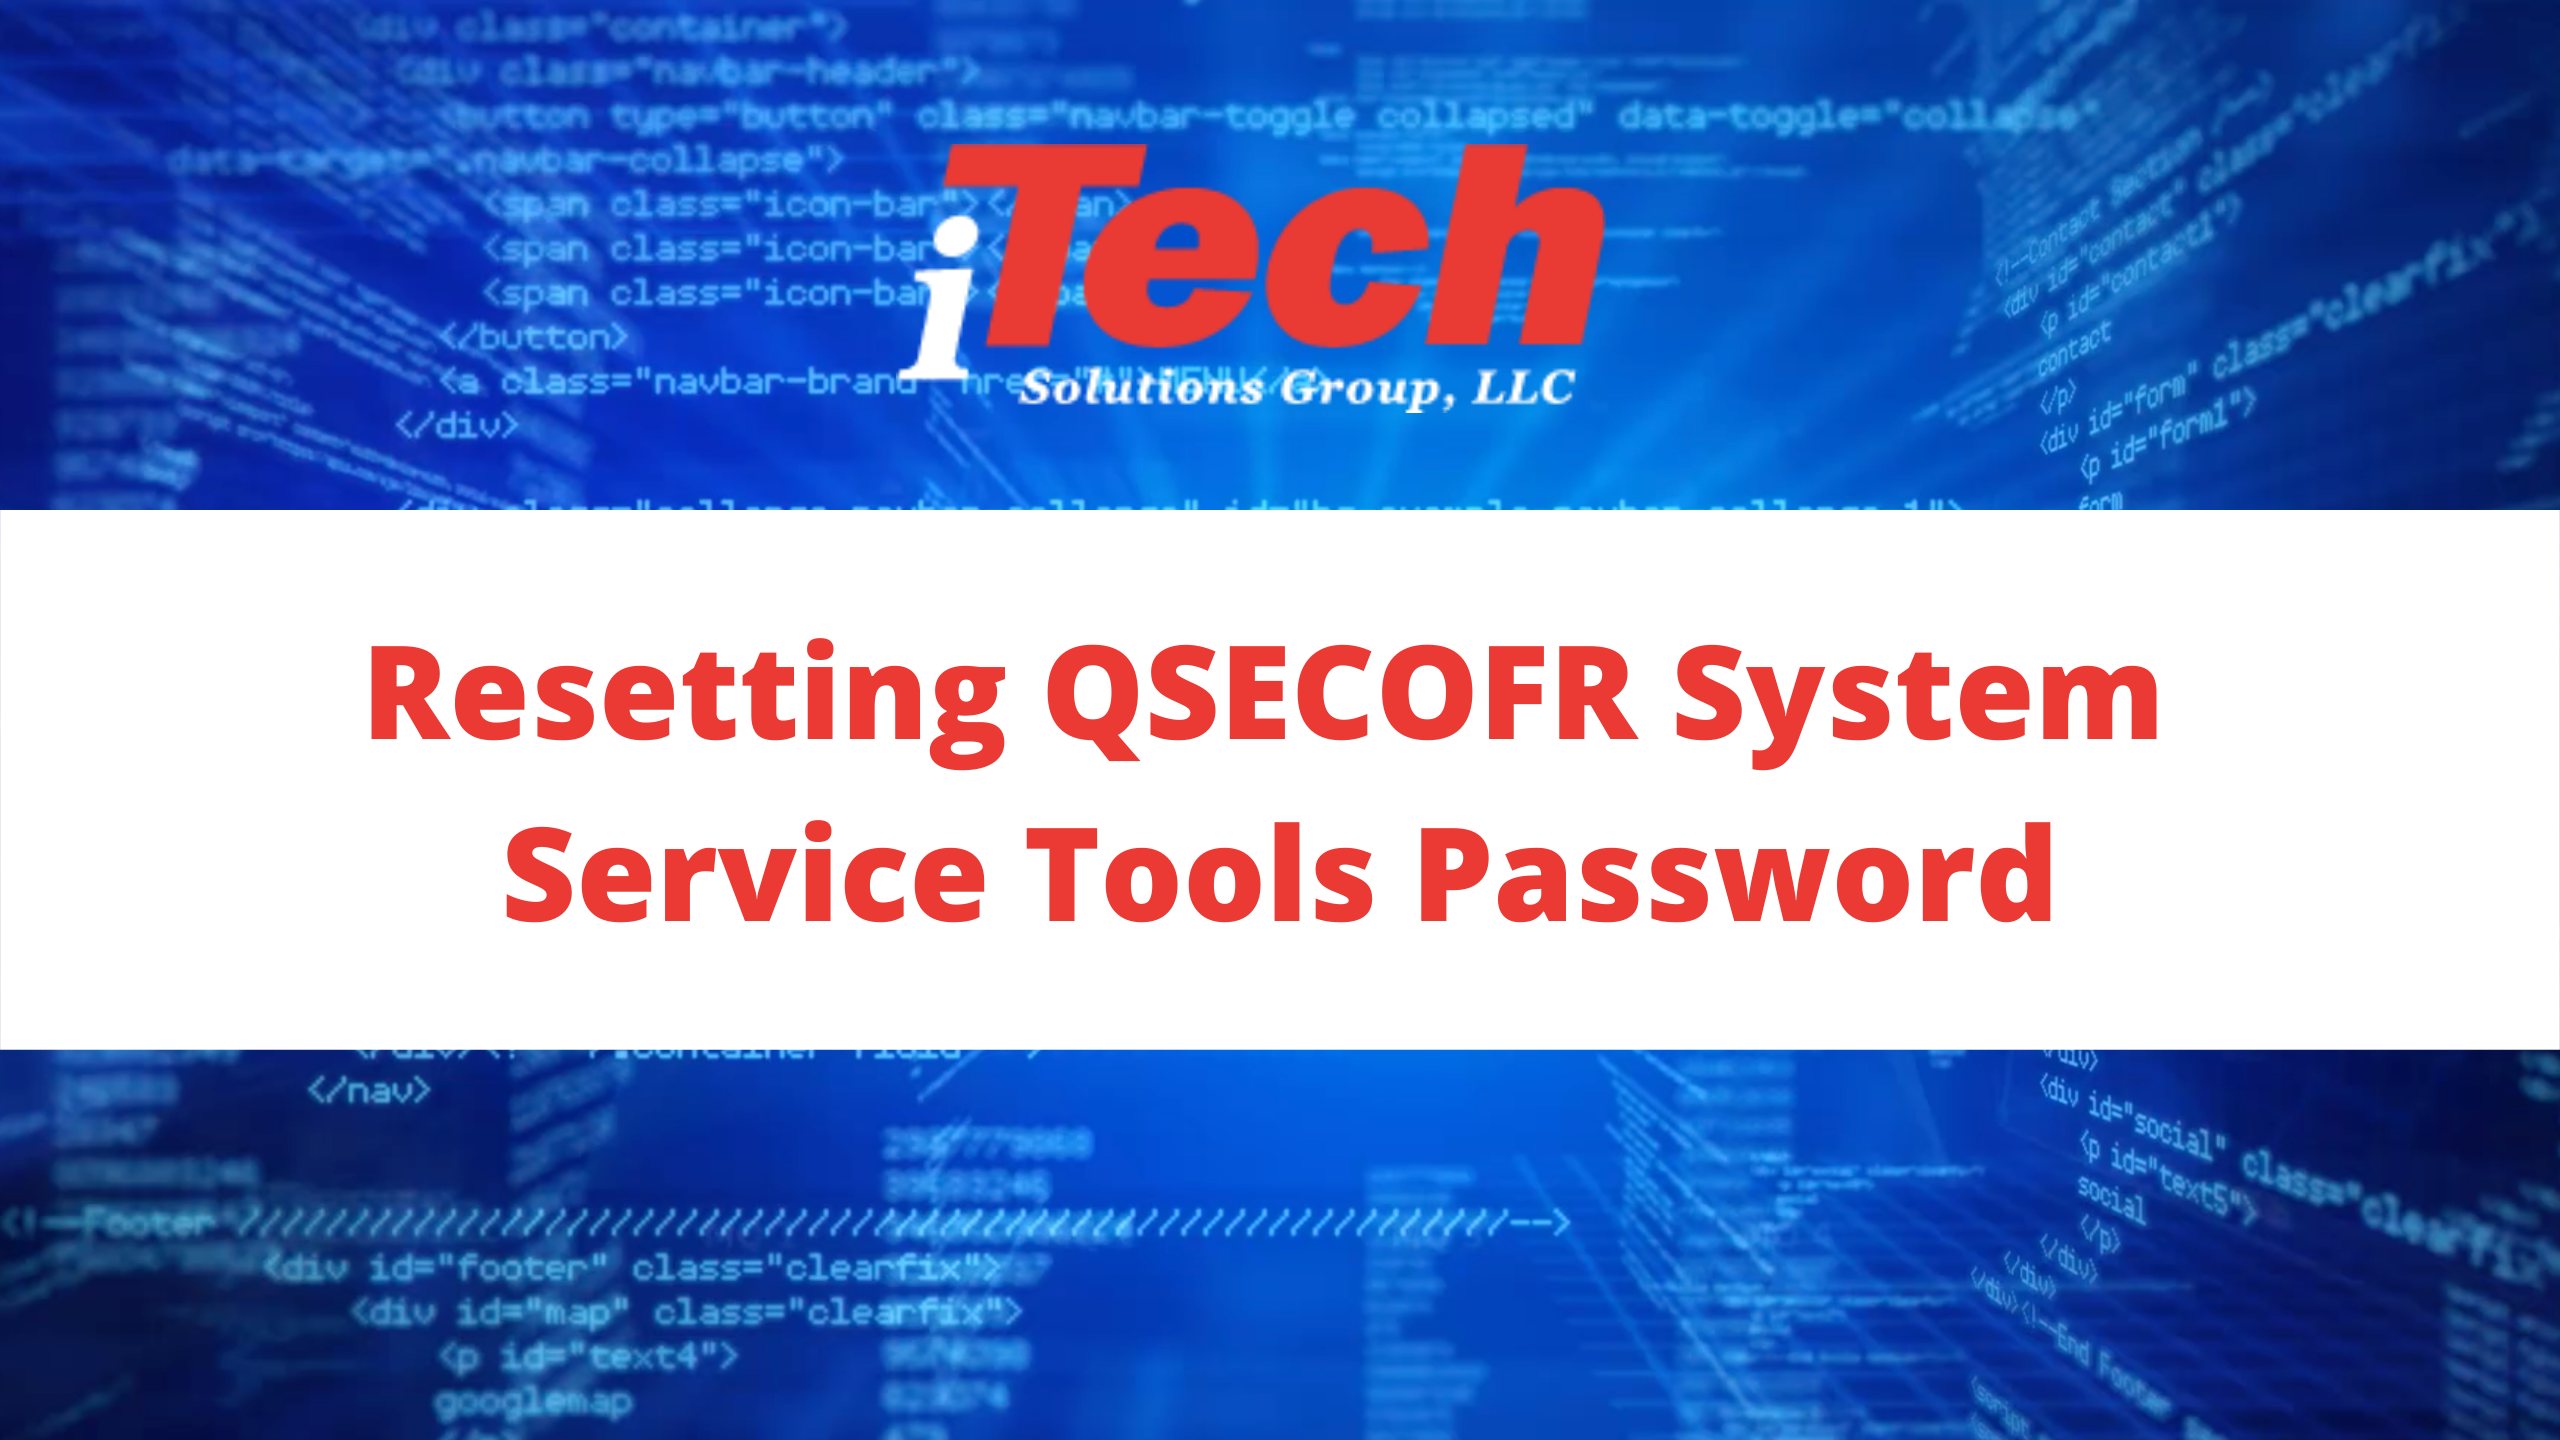 Resetting QSECOFR System Service Tools Password